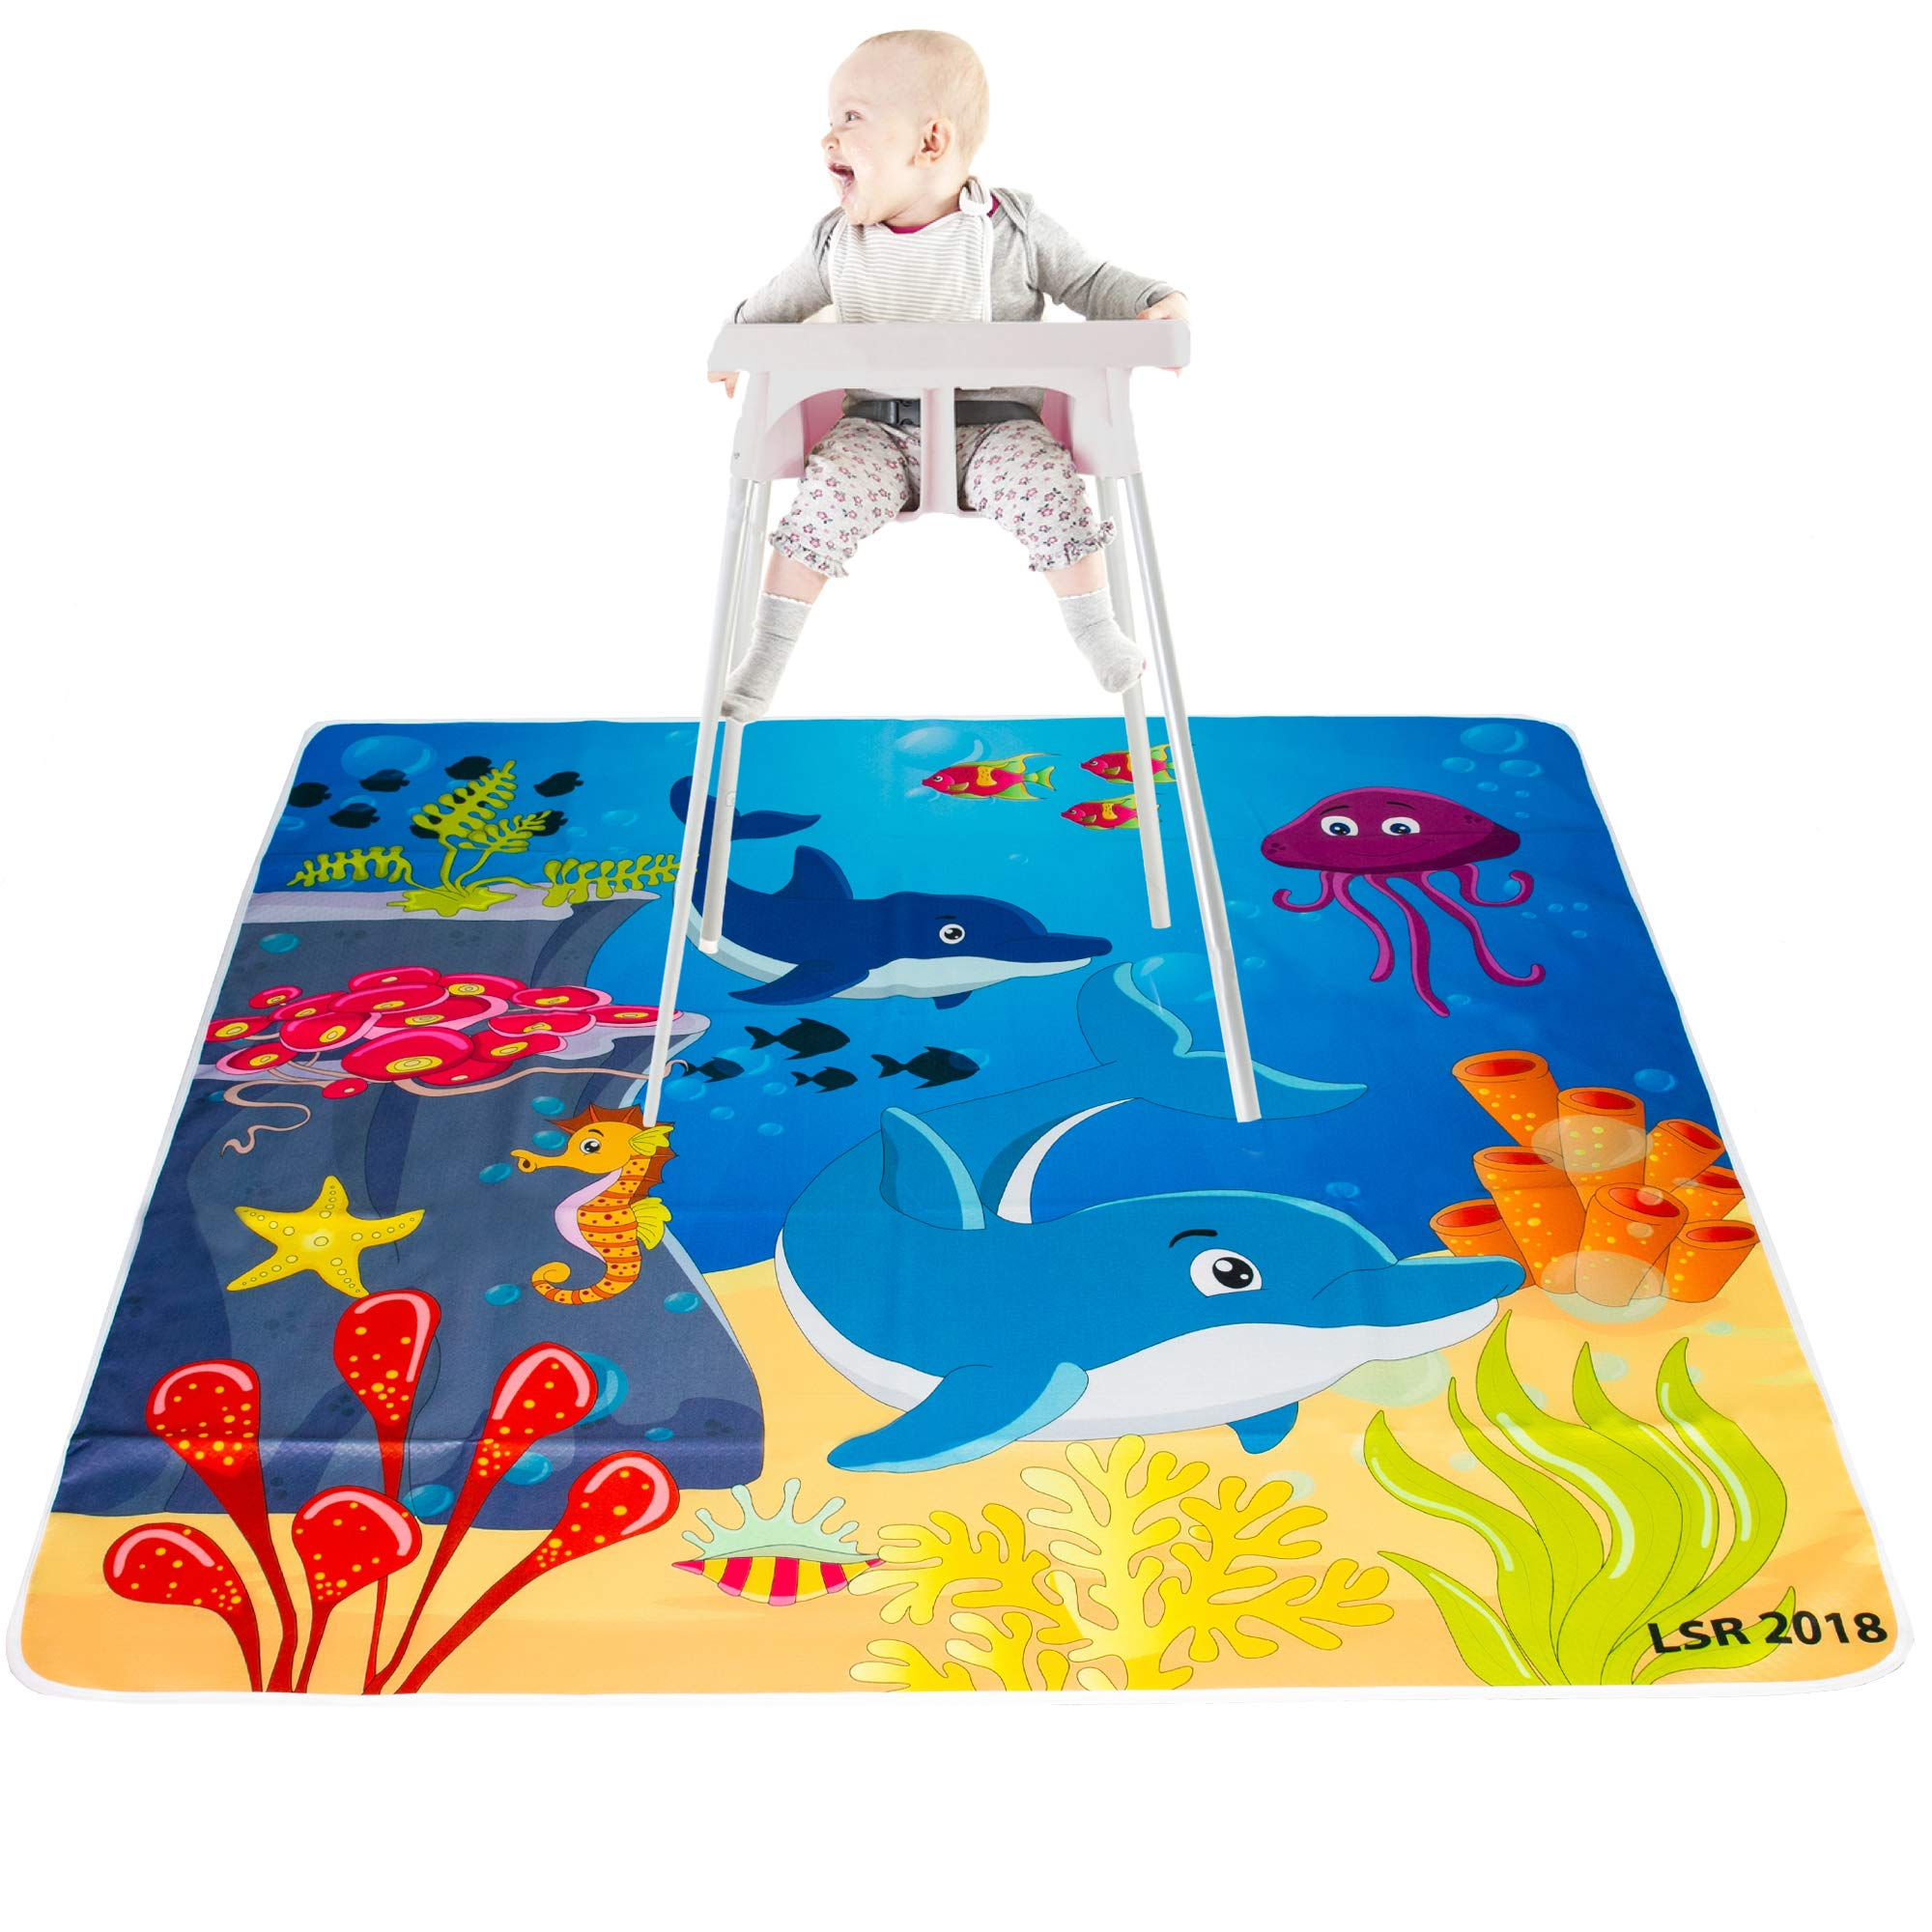 LimaWay 51'' Splat Mat for Baby/Anti Slip, Washable, Waterproof, Floor and Carpet Protector and Under The High Chair Cover/Kids Play Mat and Table Cloth for Art and Craft/LimaWay